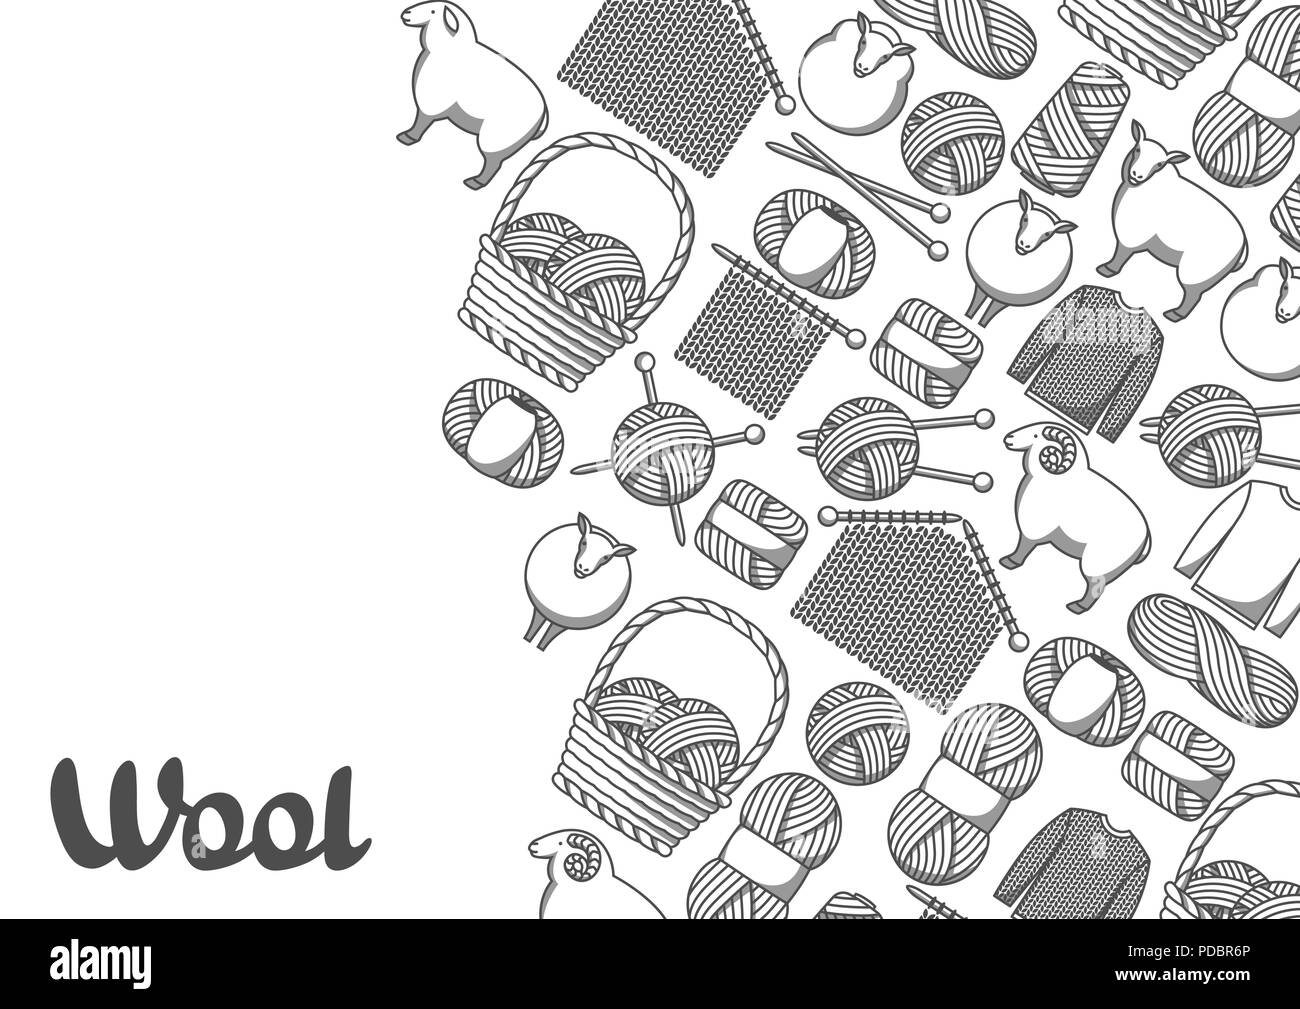 Background with wool items. Goods for hand made, knitting or tailor shop - Stock Vector